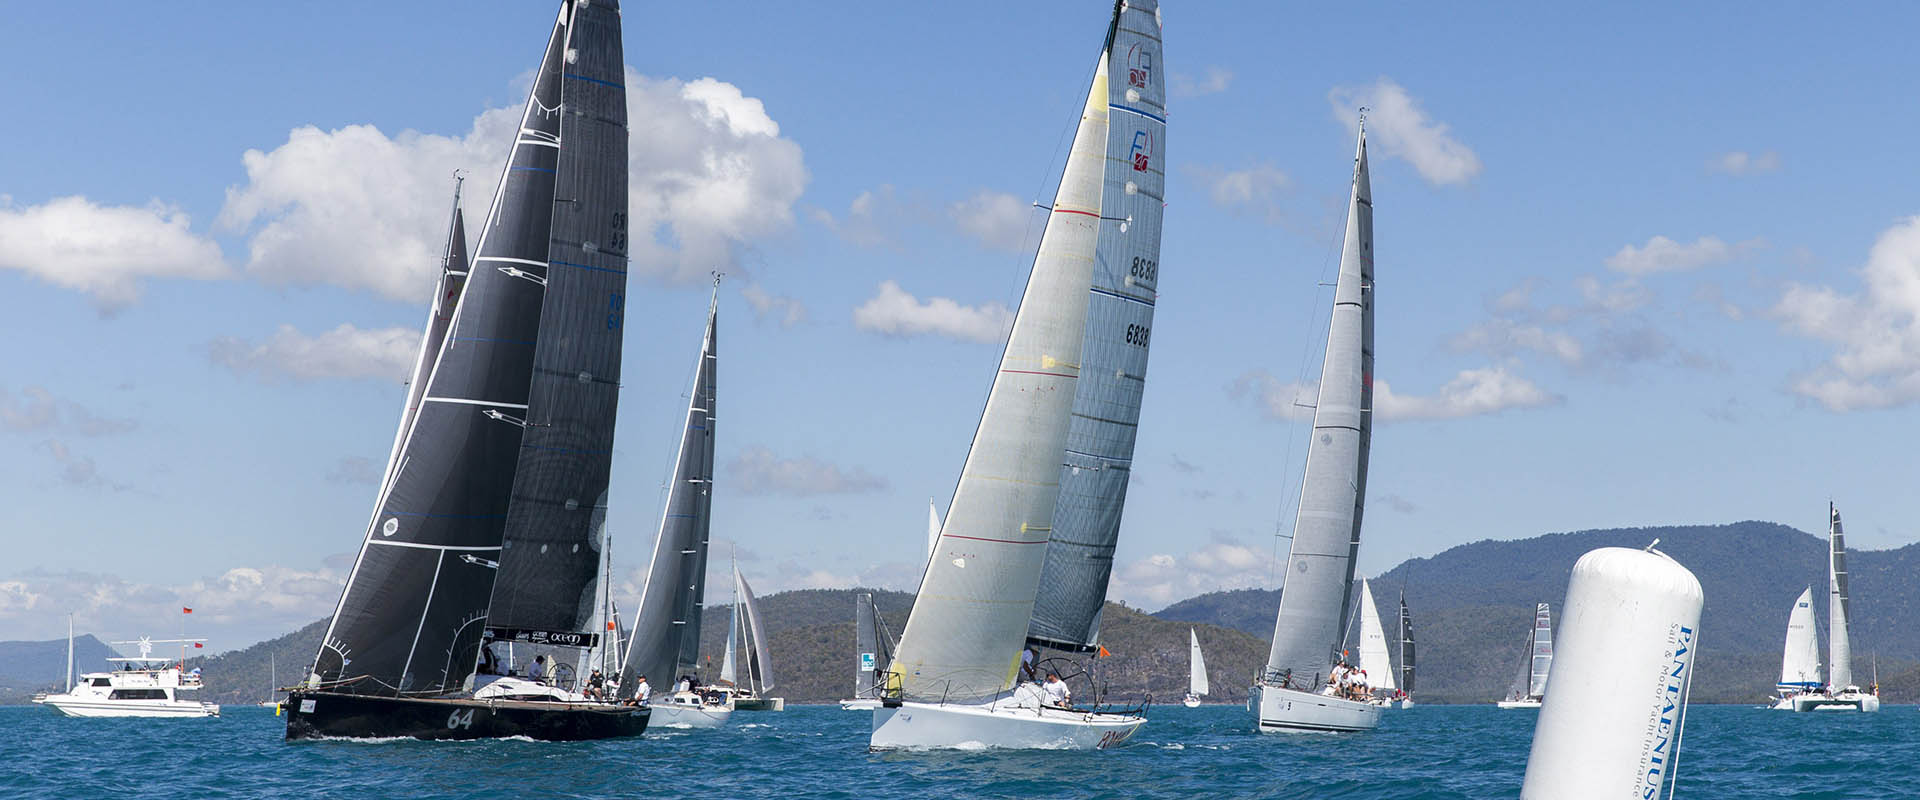 Entries To The Race Week | Airle Beach Race Week